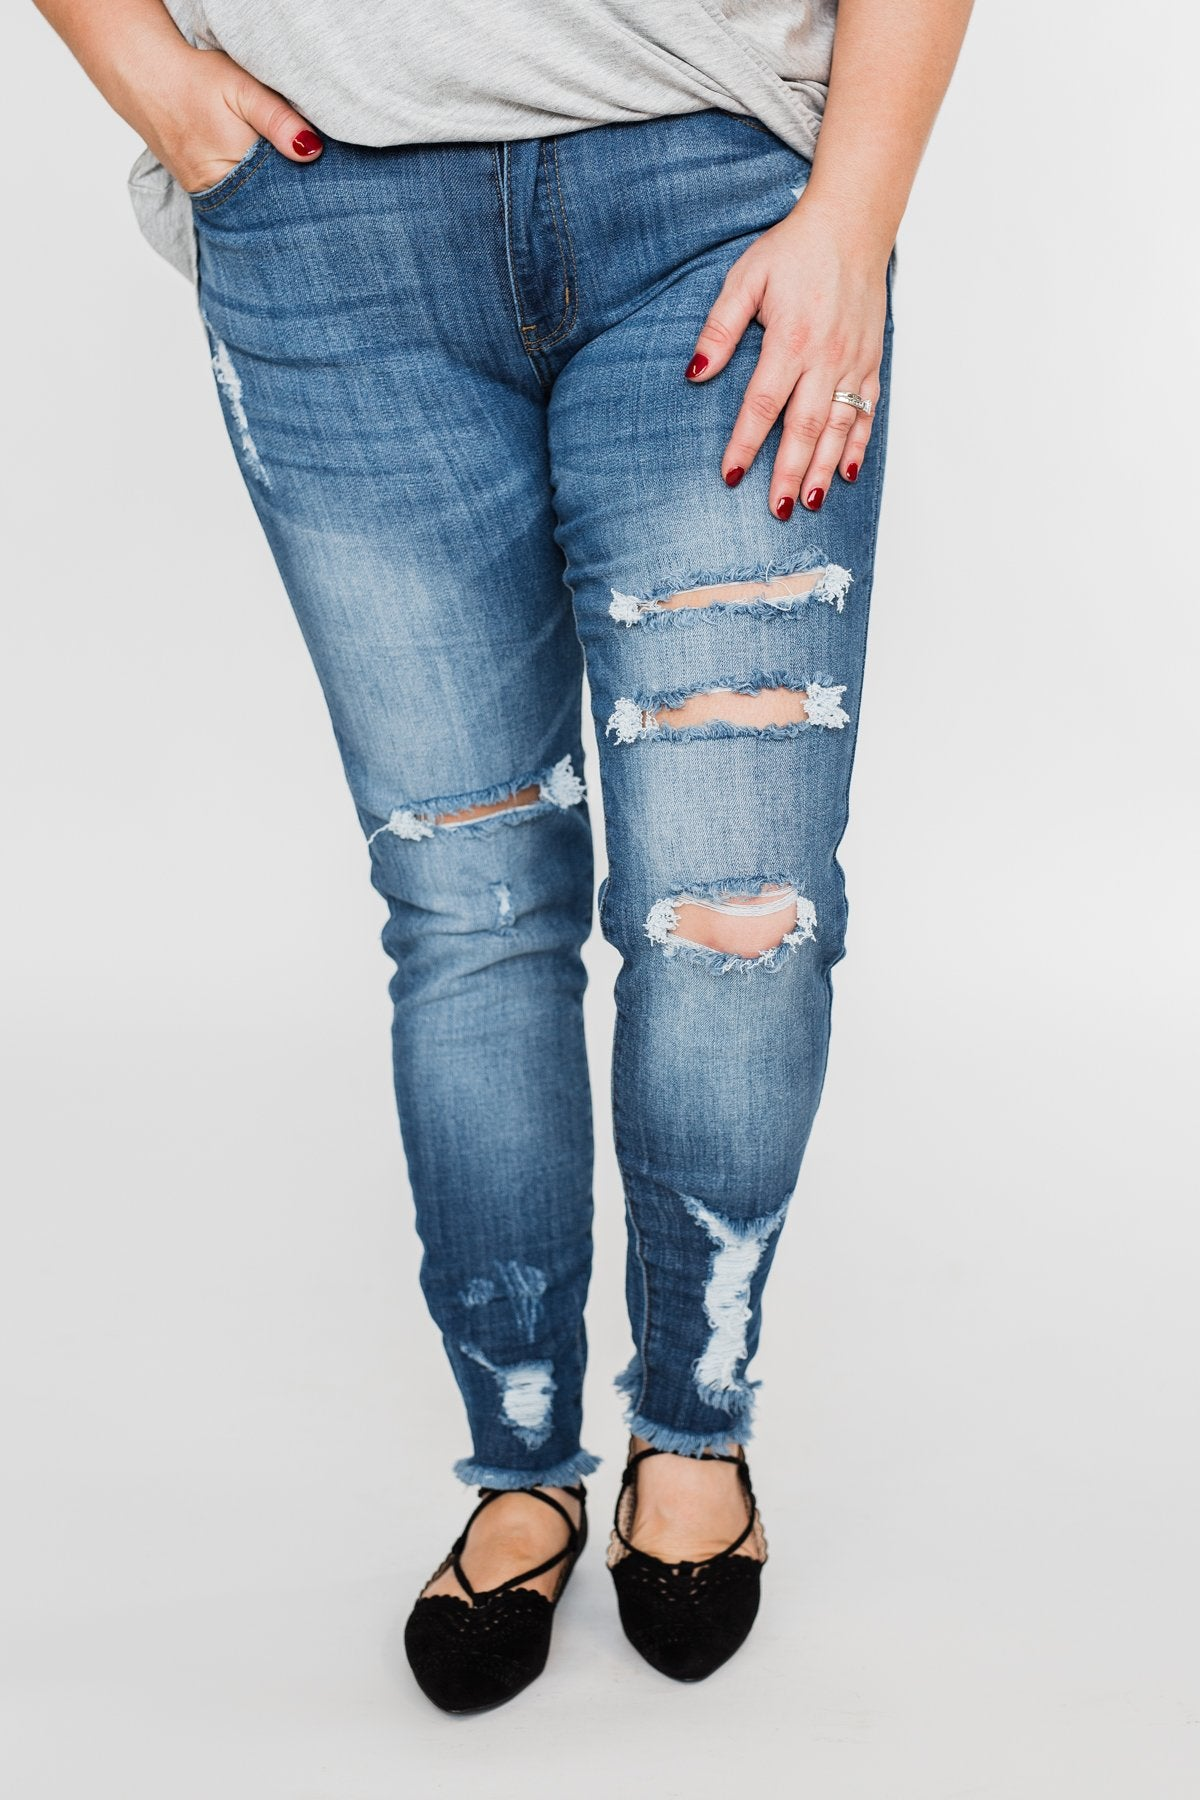 KanCan Distressed Skinny Jeans - Sammy Wash